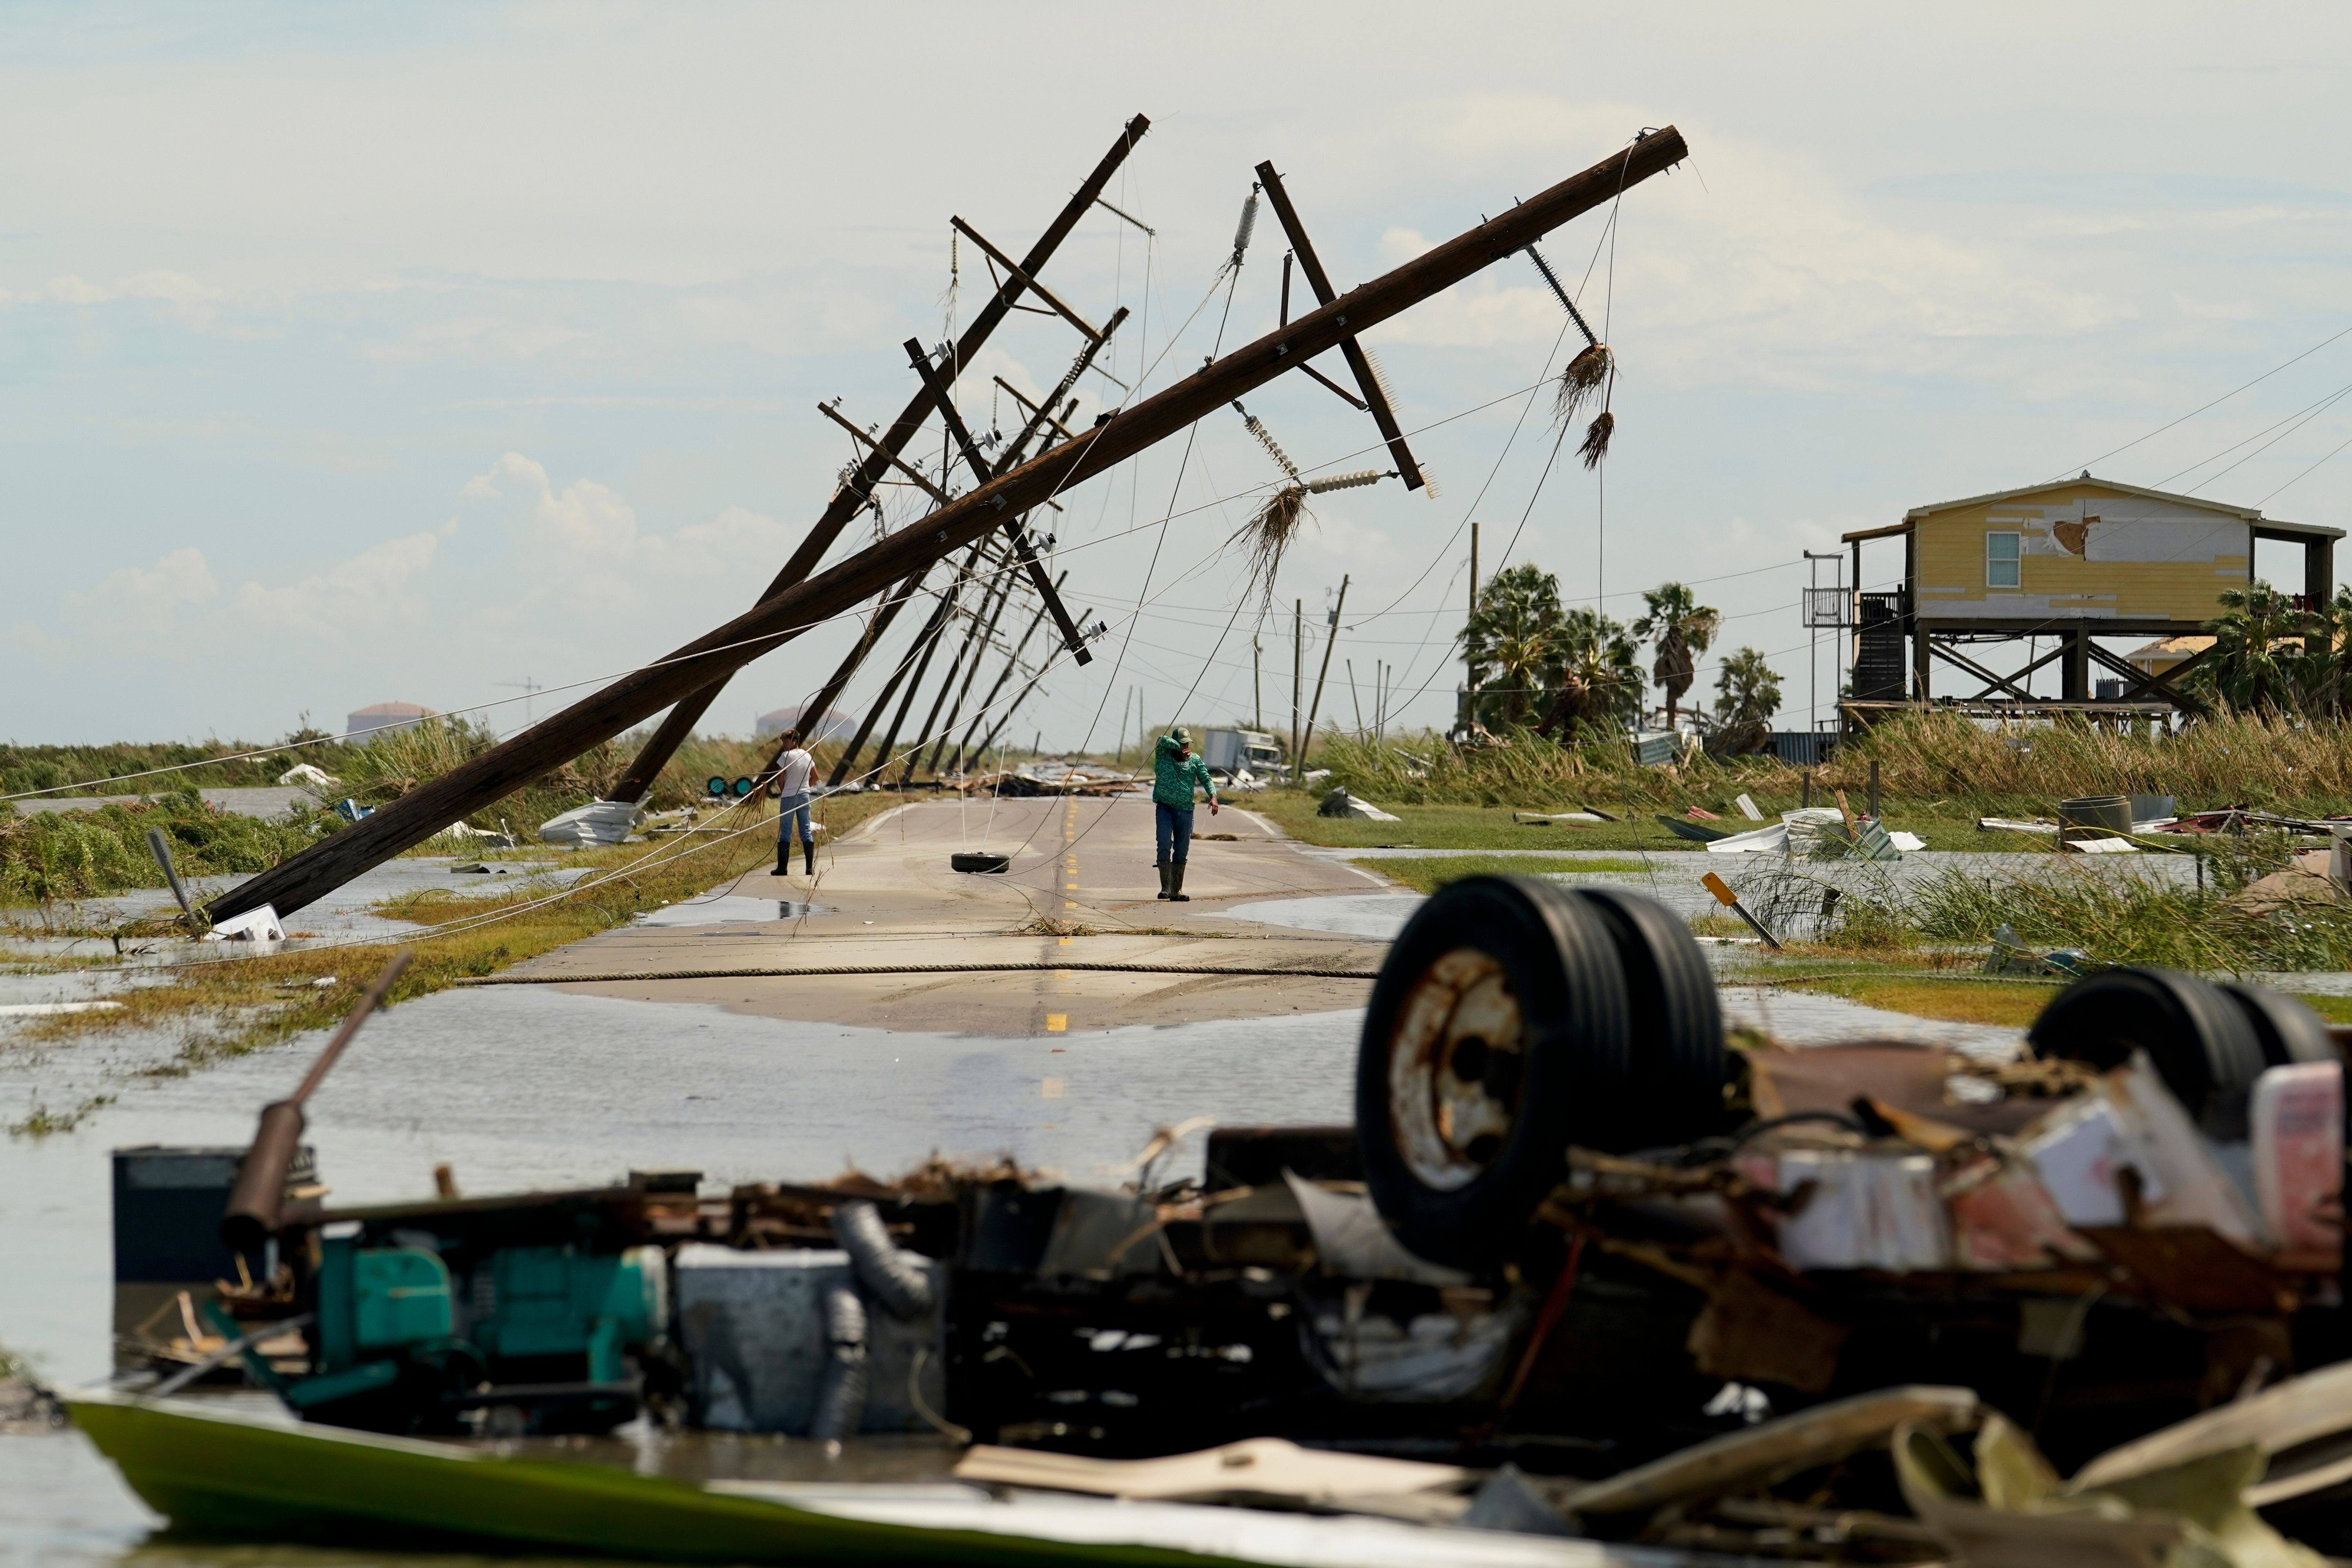 People survey the damage left in the wake of Hurricane Laura on Thursday, Aug. 27, 2020, in Holly Beach, Louisiana.